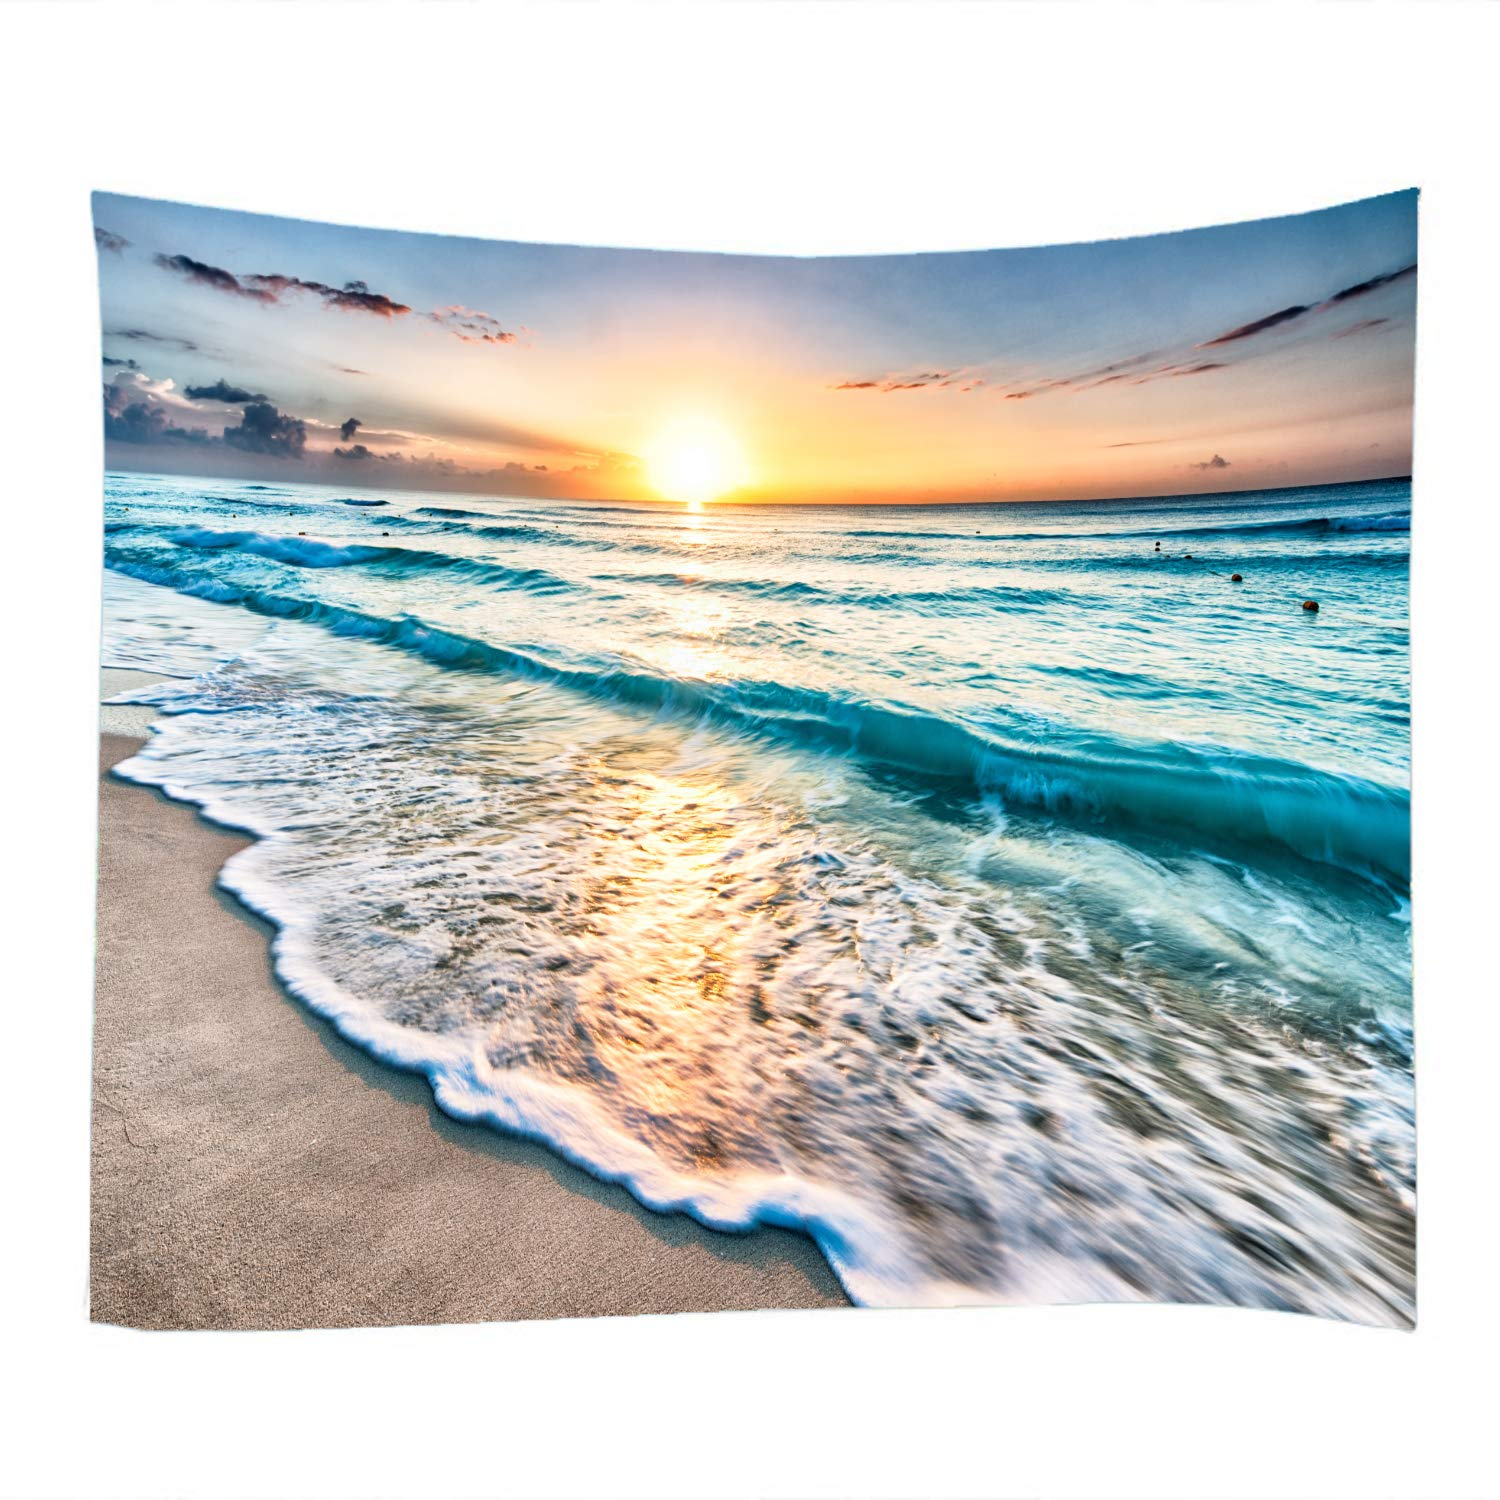 Sea Water Dusk Beach Sunset Print Decorative Throw Fabric Wall Tapestry Hanging Art Decor for Living Room and Bedroom 79x59 Inches